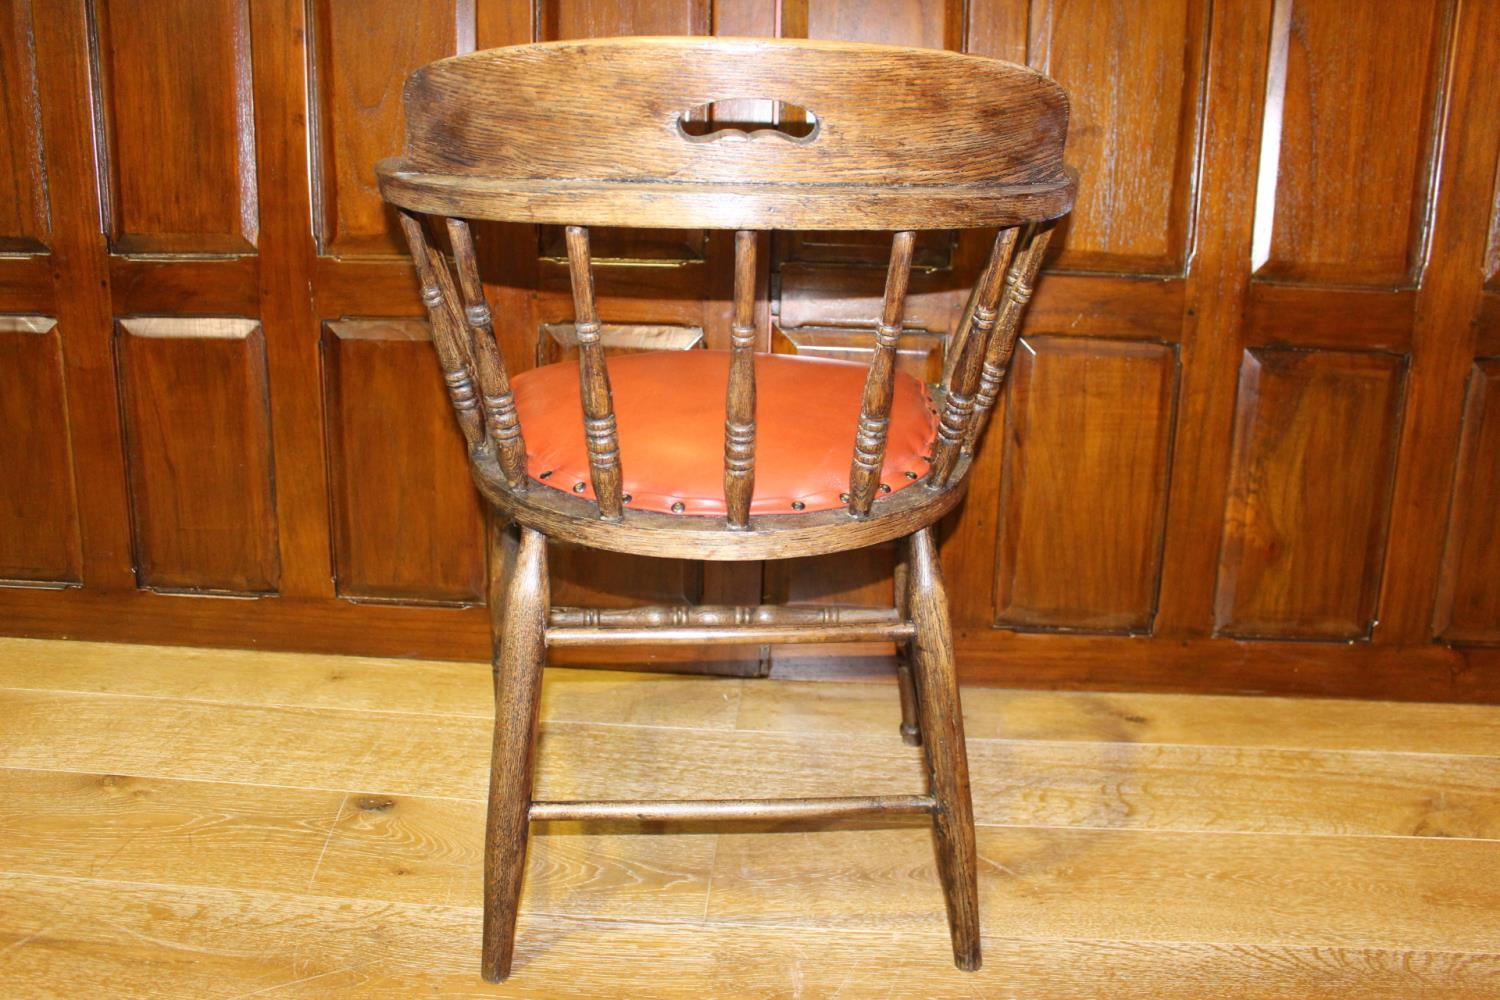 Elm captains chair - Image 2 of 2